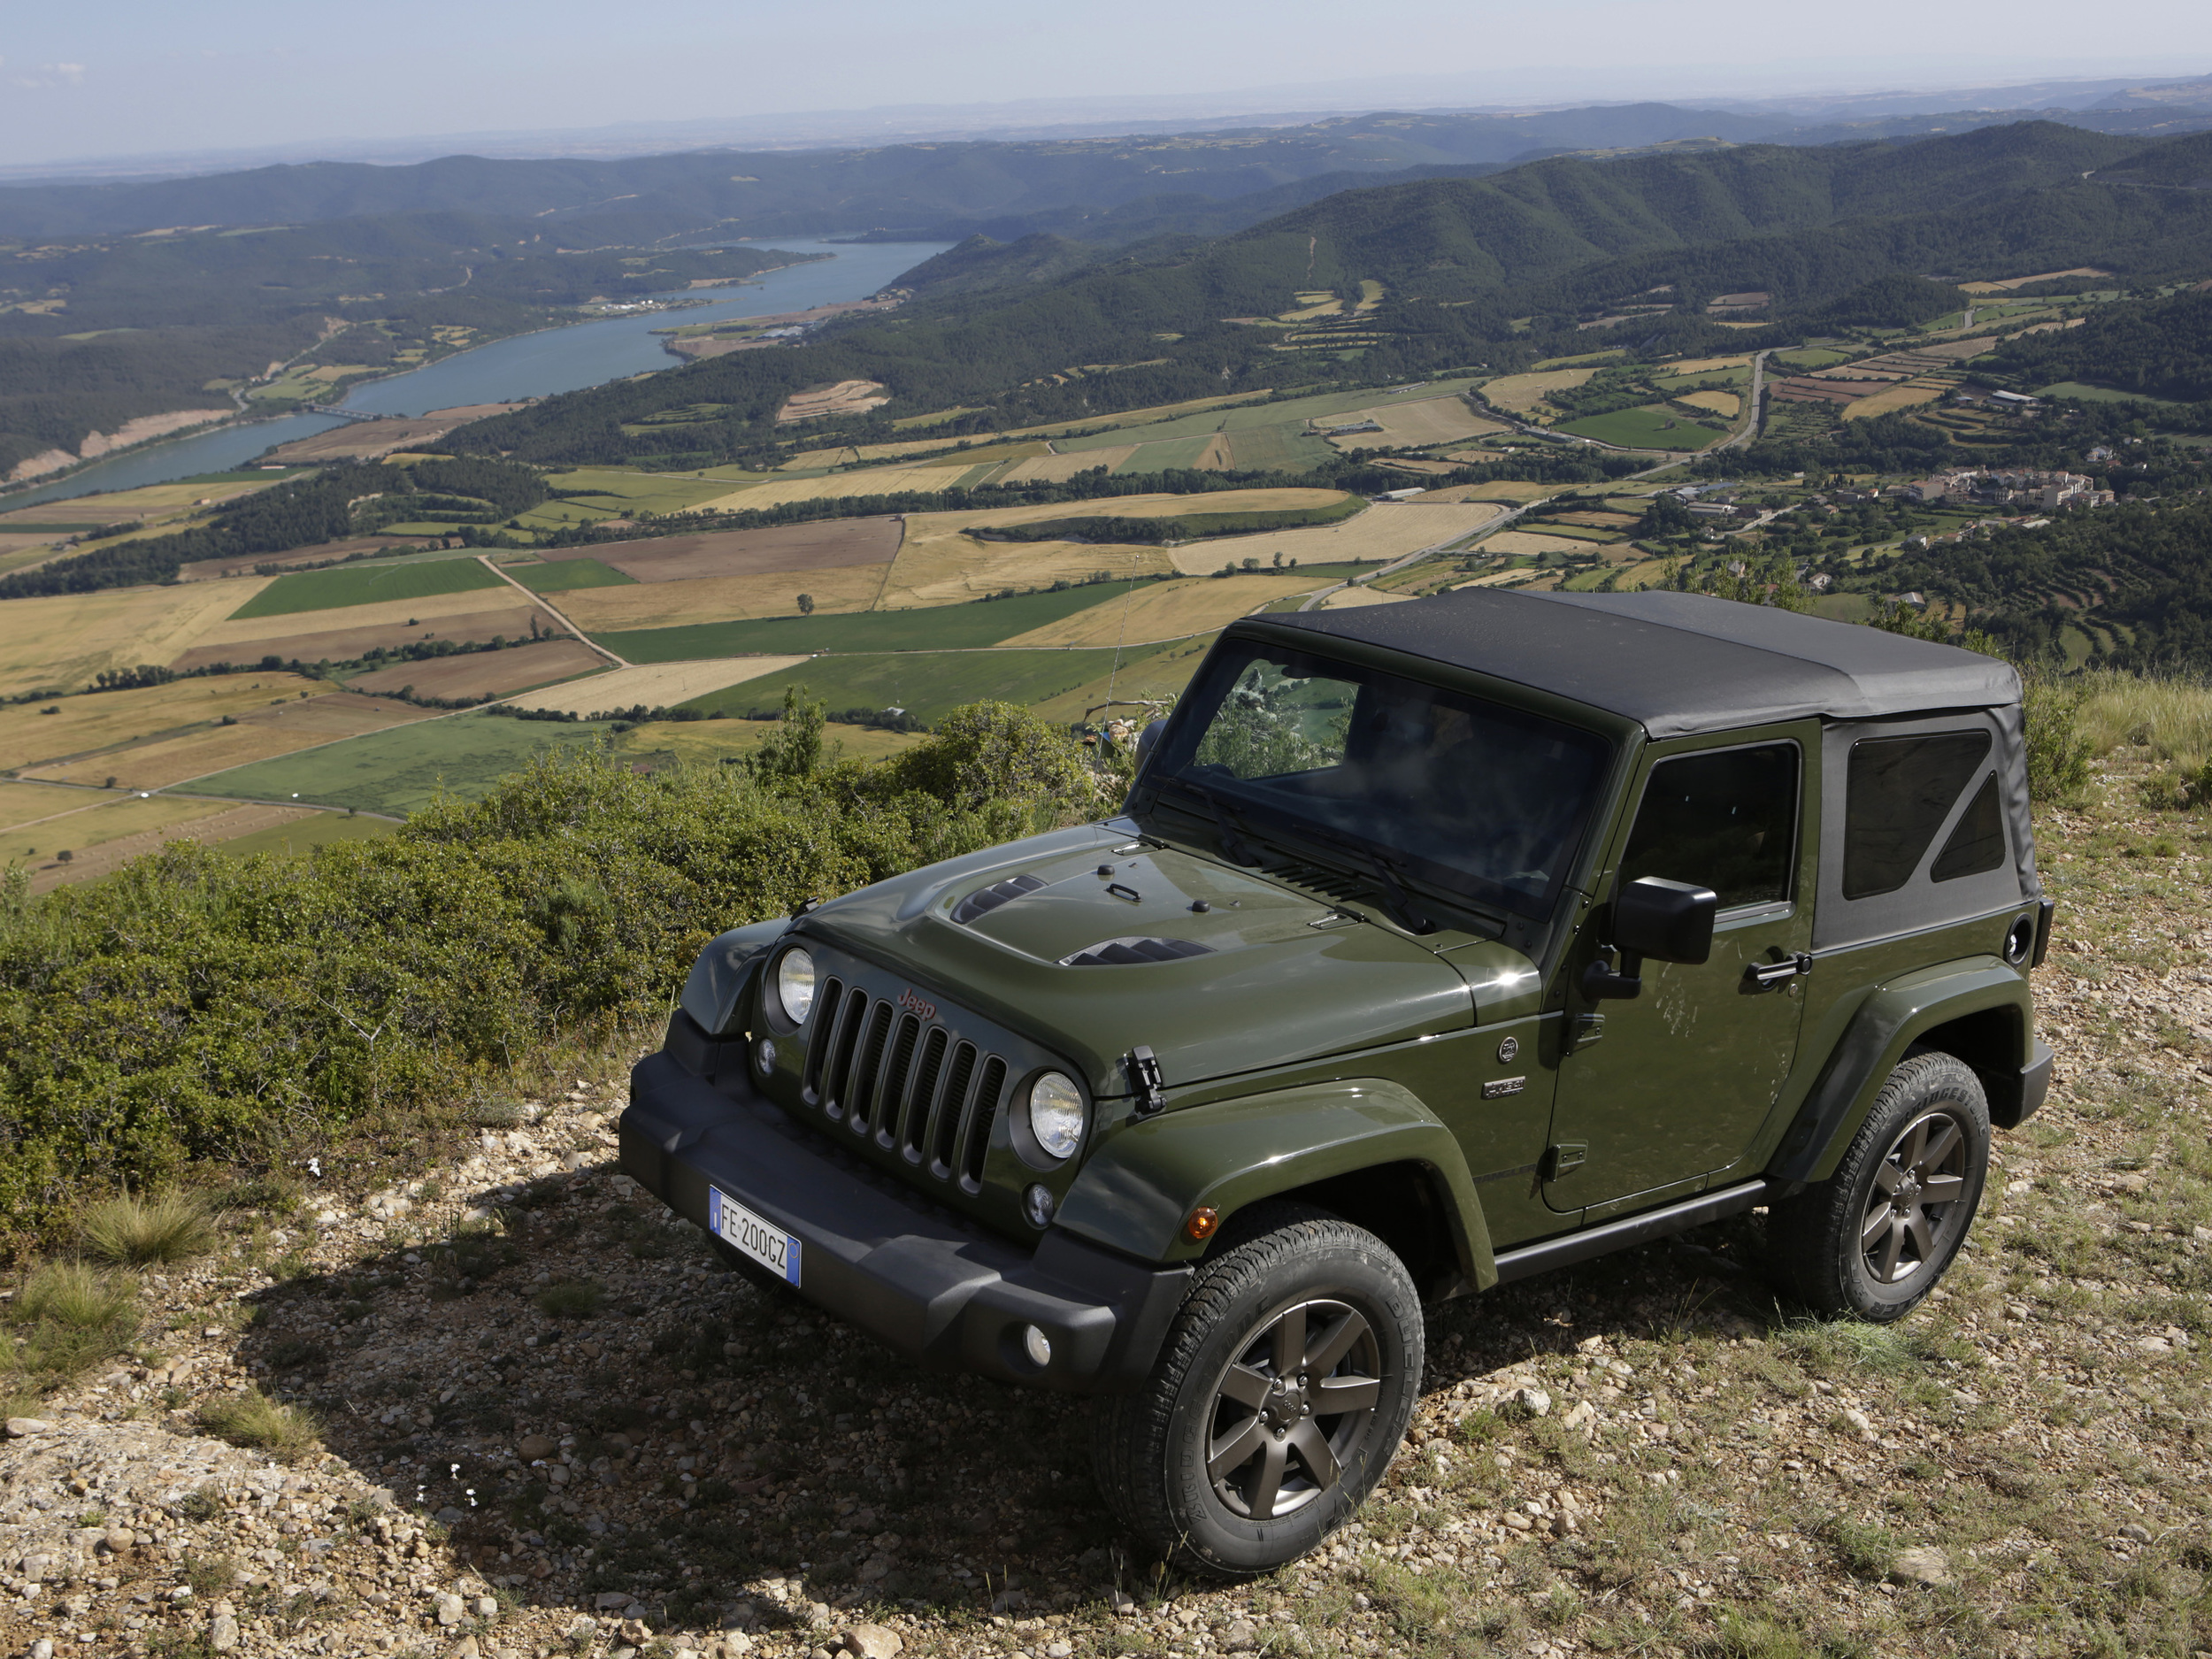 1605613_Jeep_Wrangler_iconic_hero_02.jpg